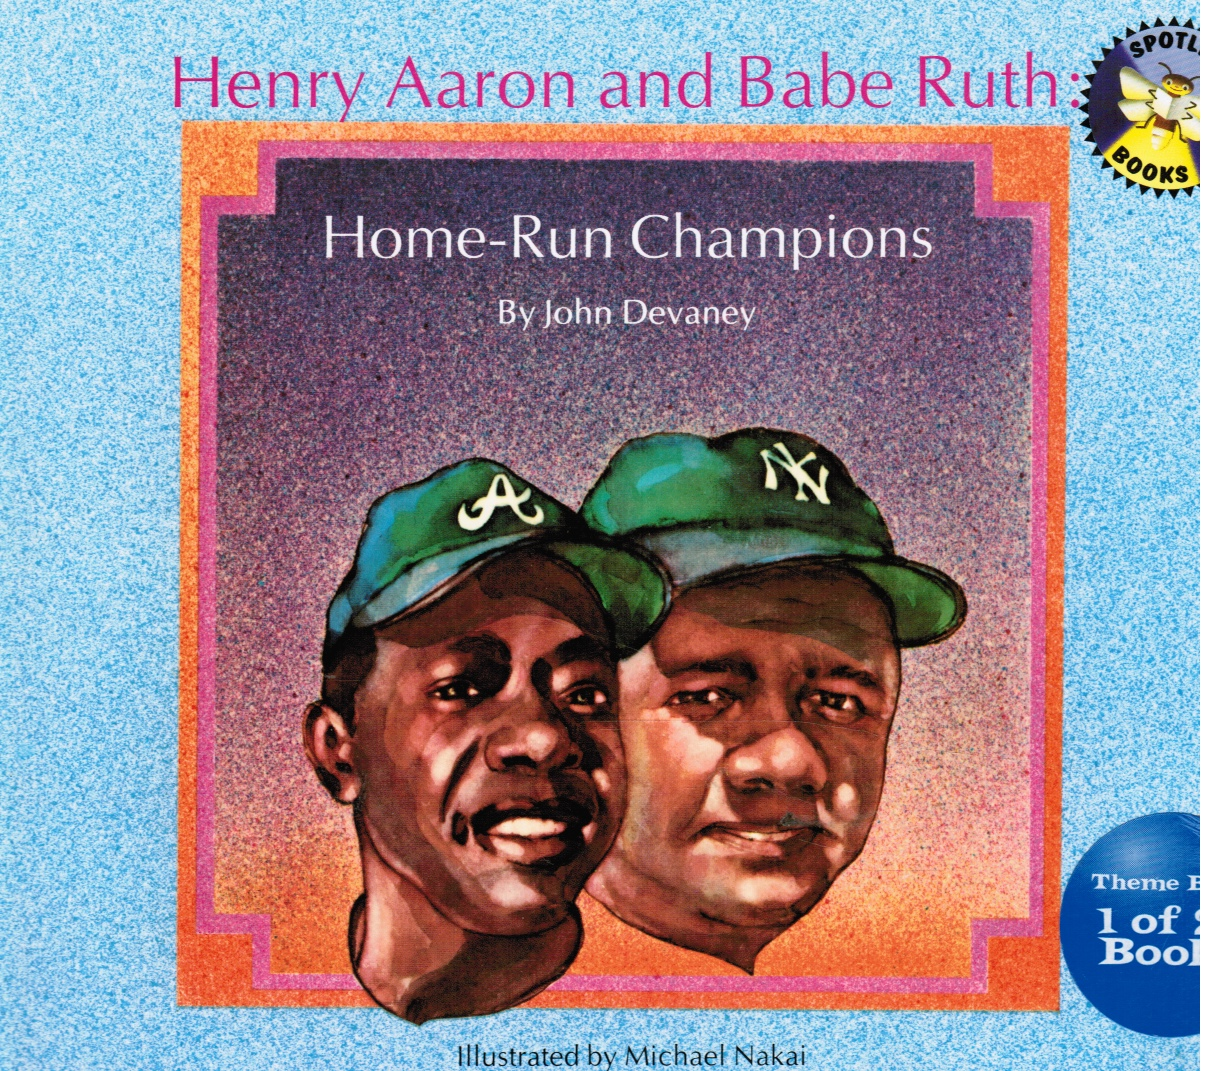 Image for Henry Aaron and Babe Ruth - Home-Run Champions: